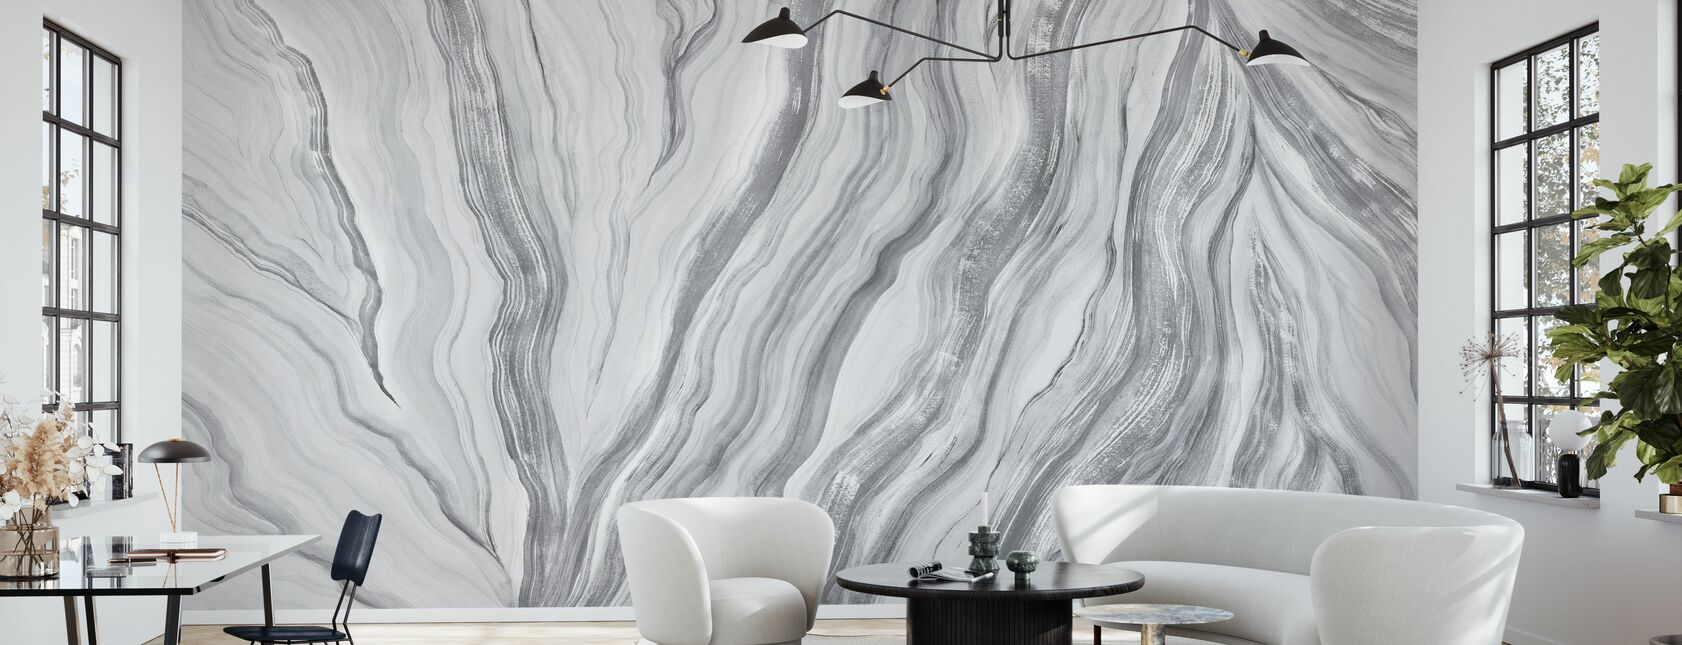 Unearth - Granite - Wallpaper - Living Room